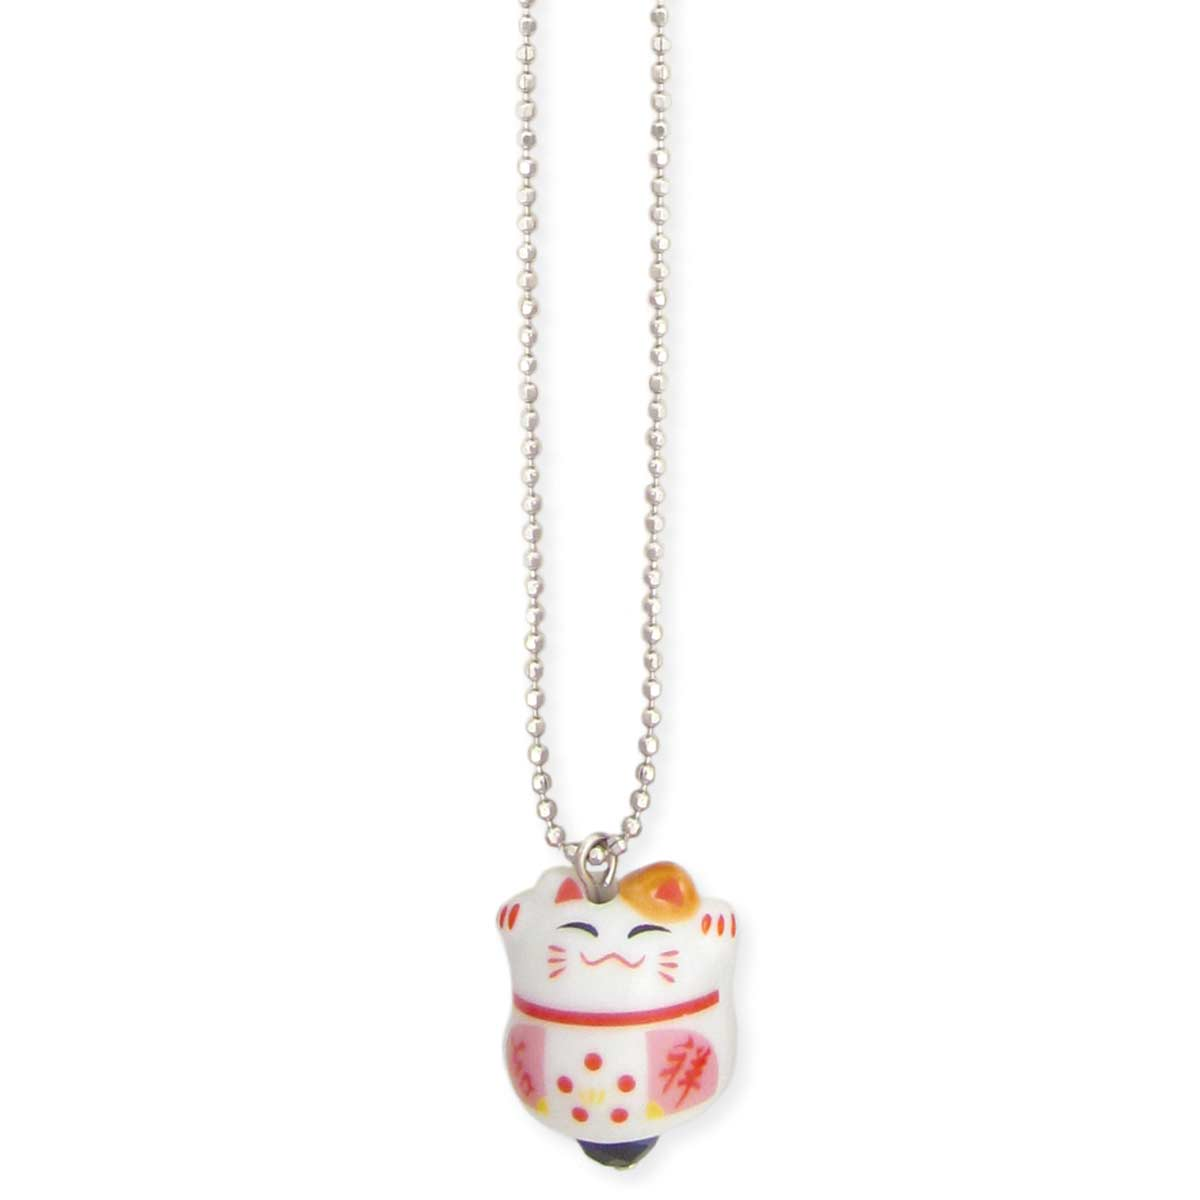 image porcelain glasgow poodle l products necklace from multicolor pink cropped by front boutique cat